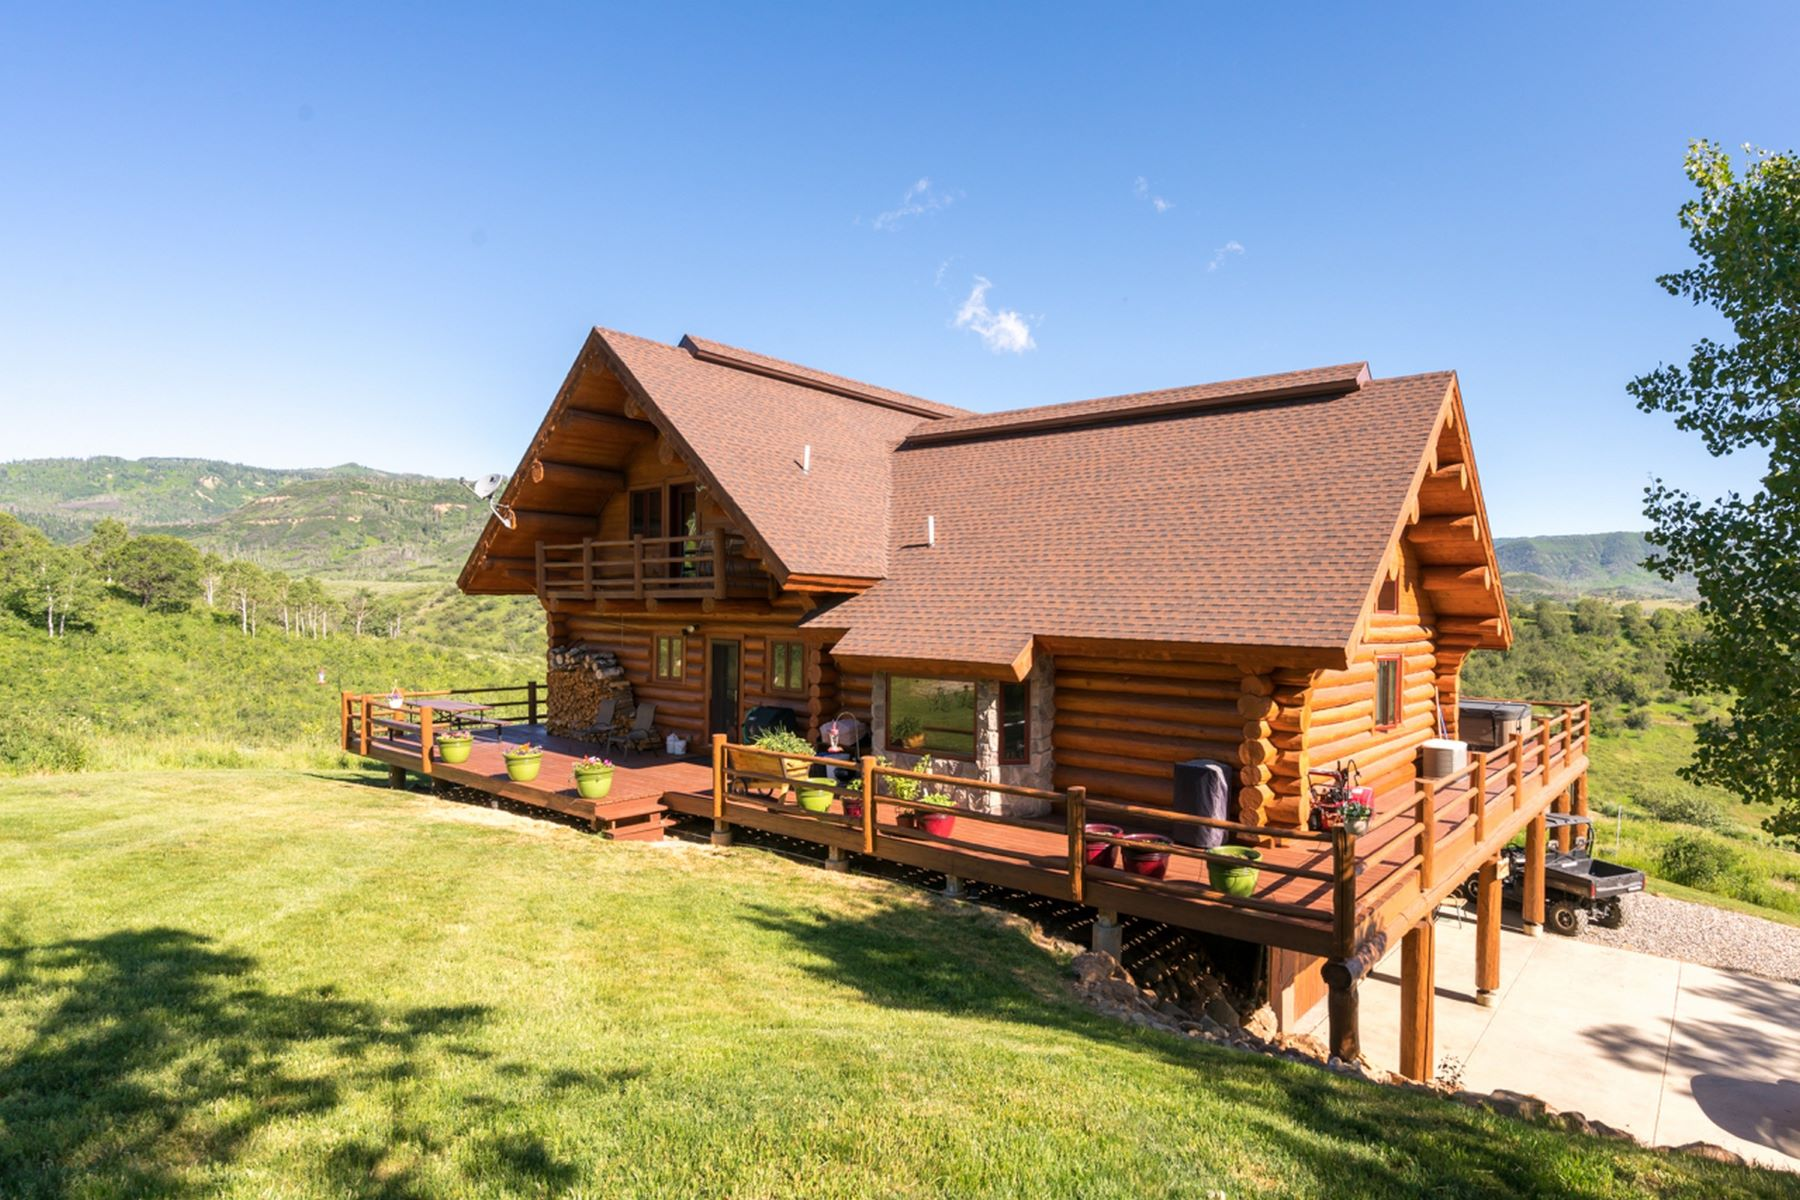 Casa Unifamiliar por un Venta en Epic Rocky Mountain Log Home 47505 County Road 52W Steamboat Springs, Colorado 80487 Estados Unidos